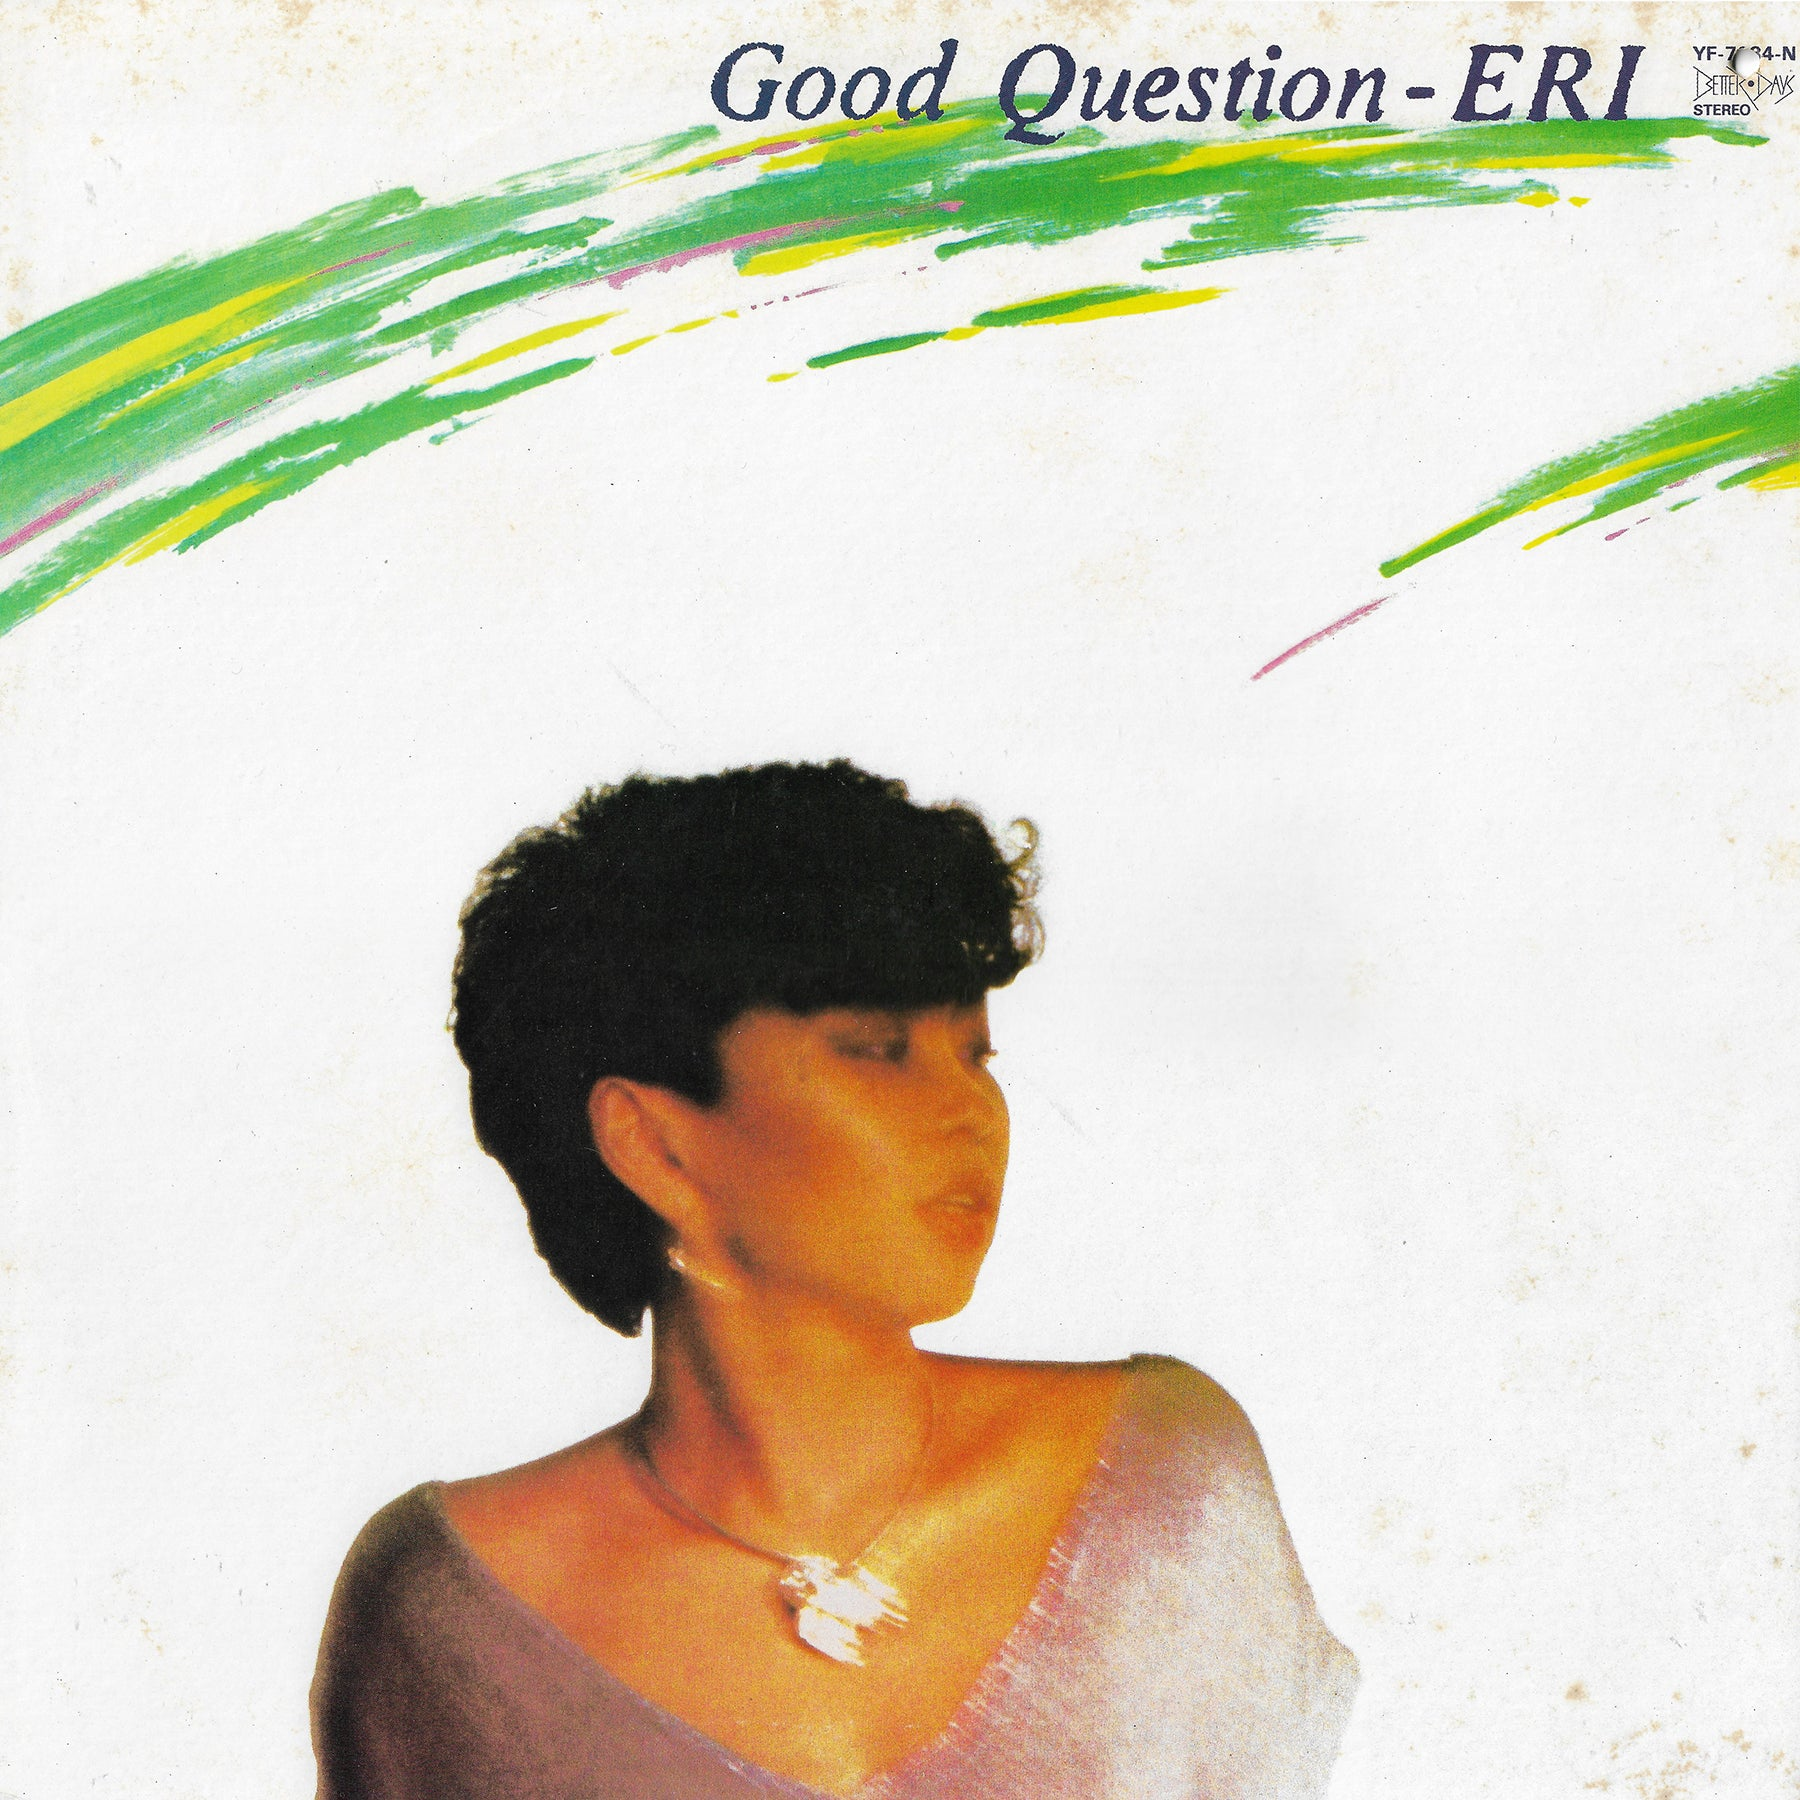 Eri - Good Question